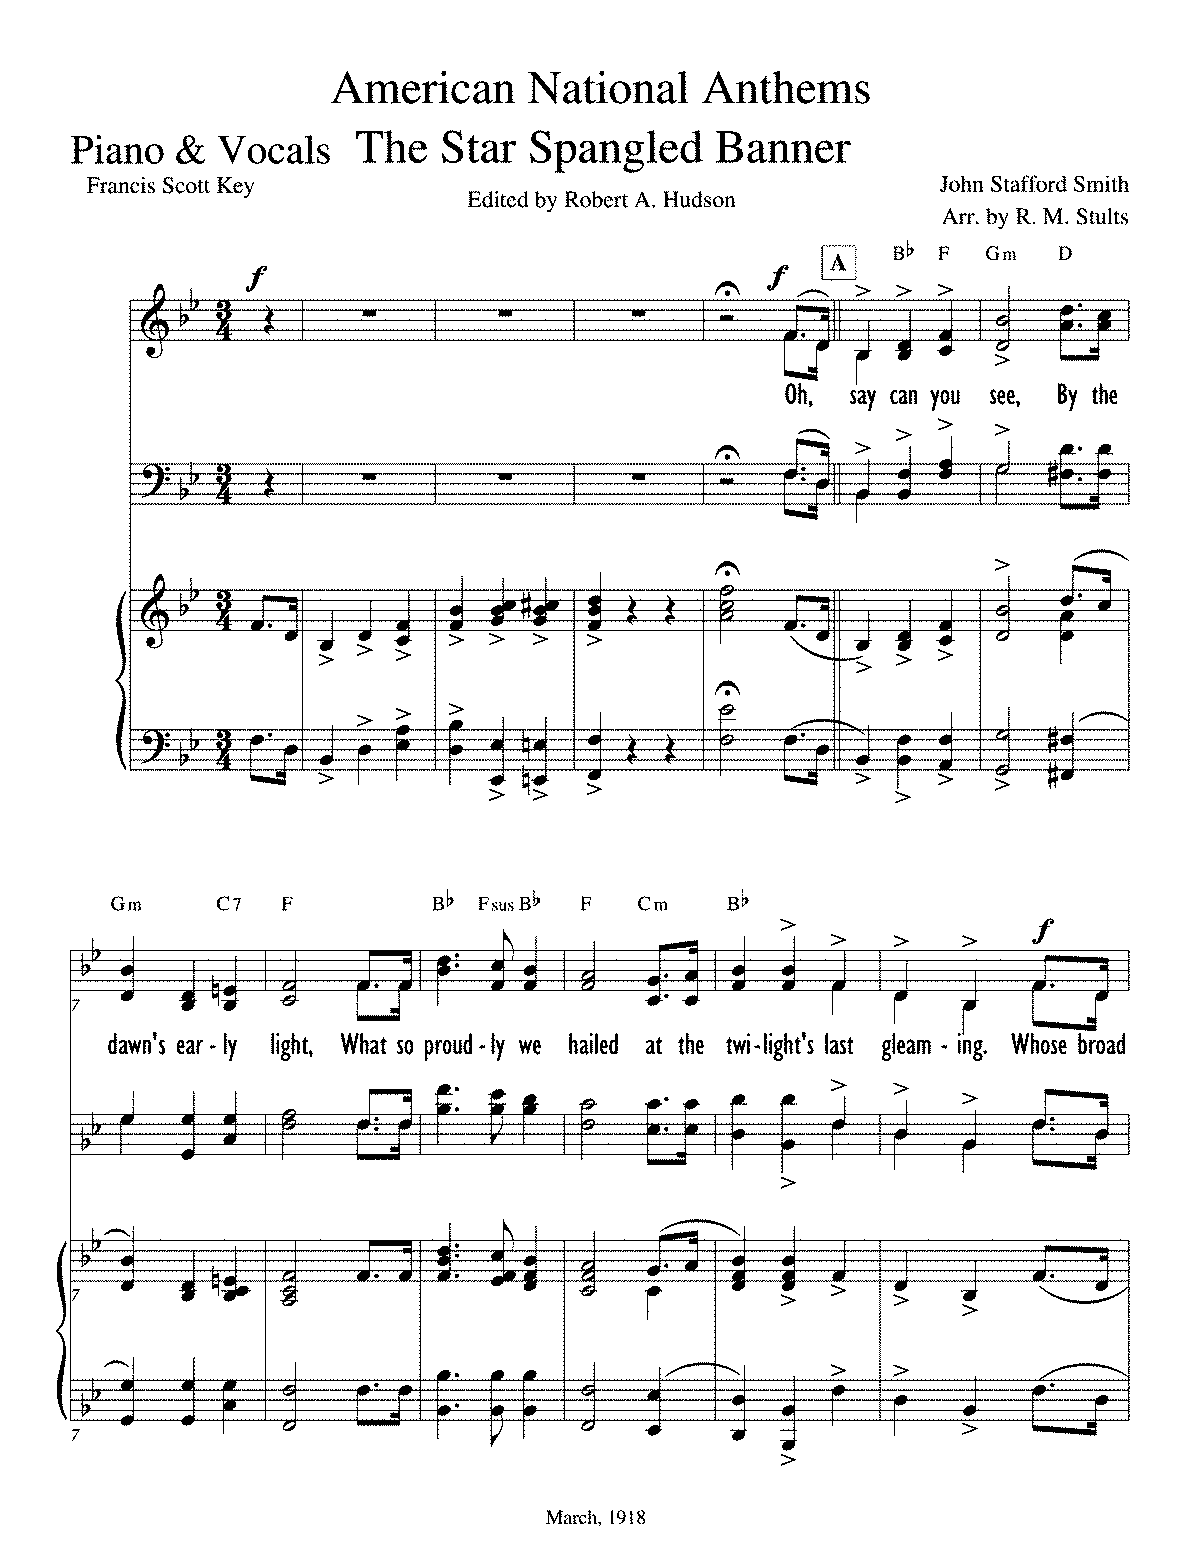 PMLP208661-The Star Spangled Banner Stults - 001G Piano & Vocals.pdf